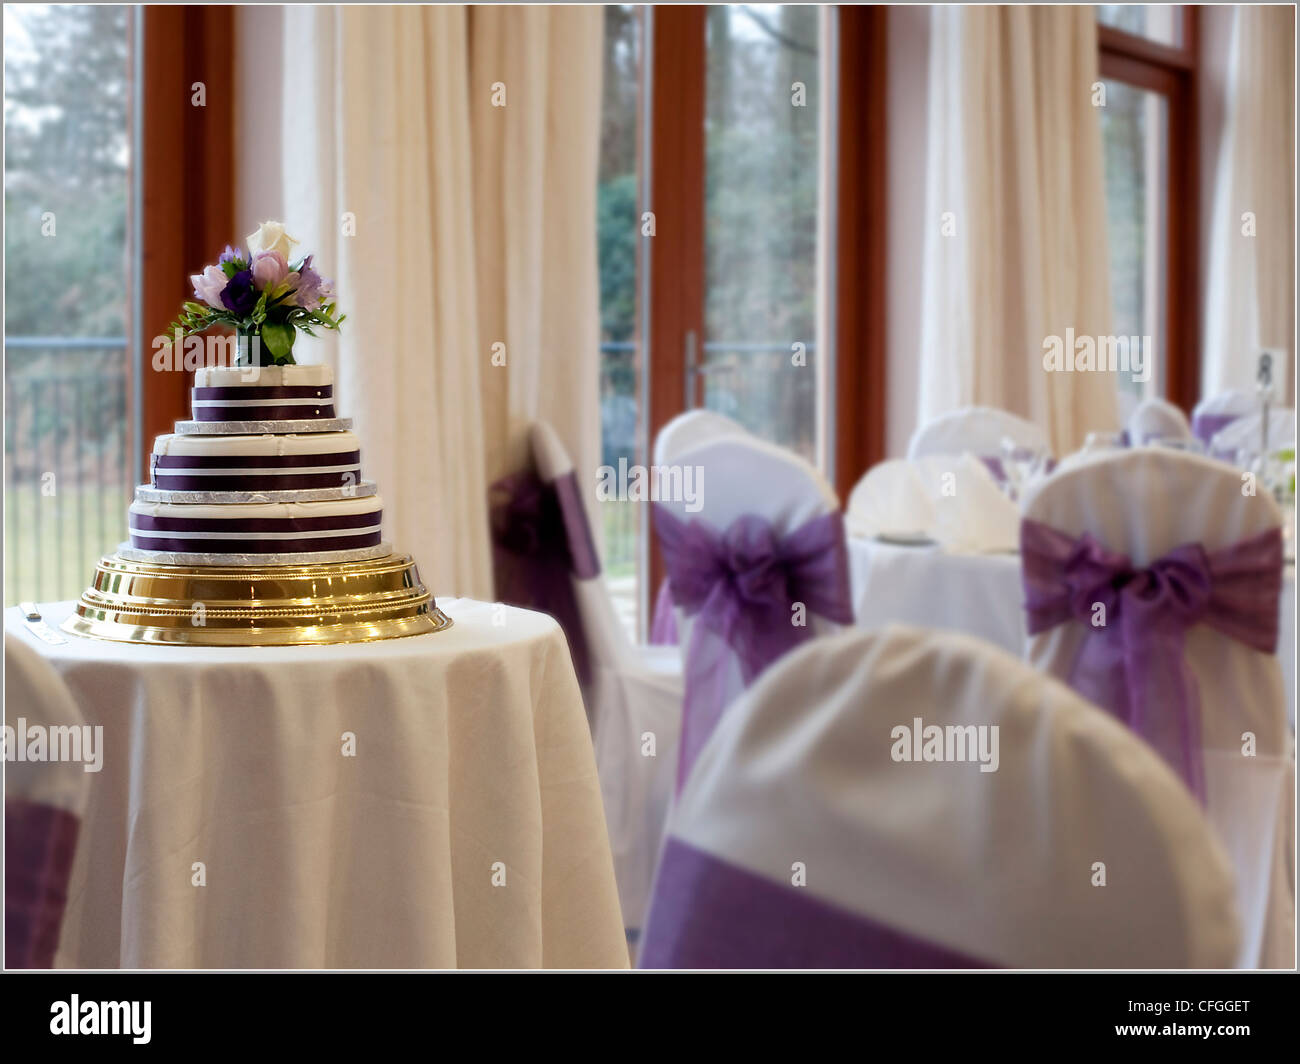 Purple And Gold Wedding.A White Purple And Gold Wedding Cake Sits On A Table In An